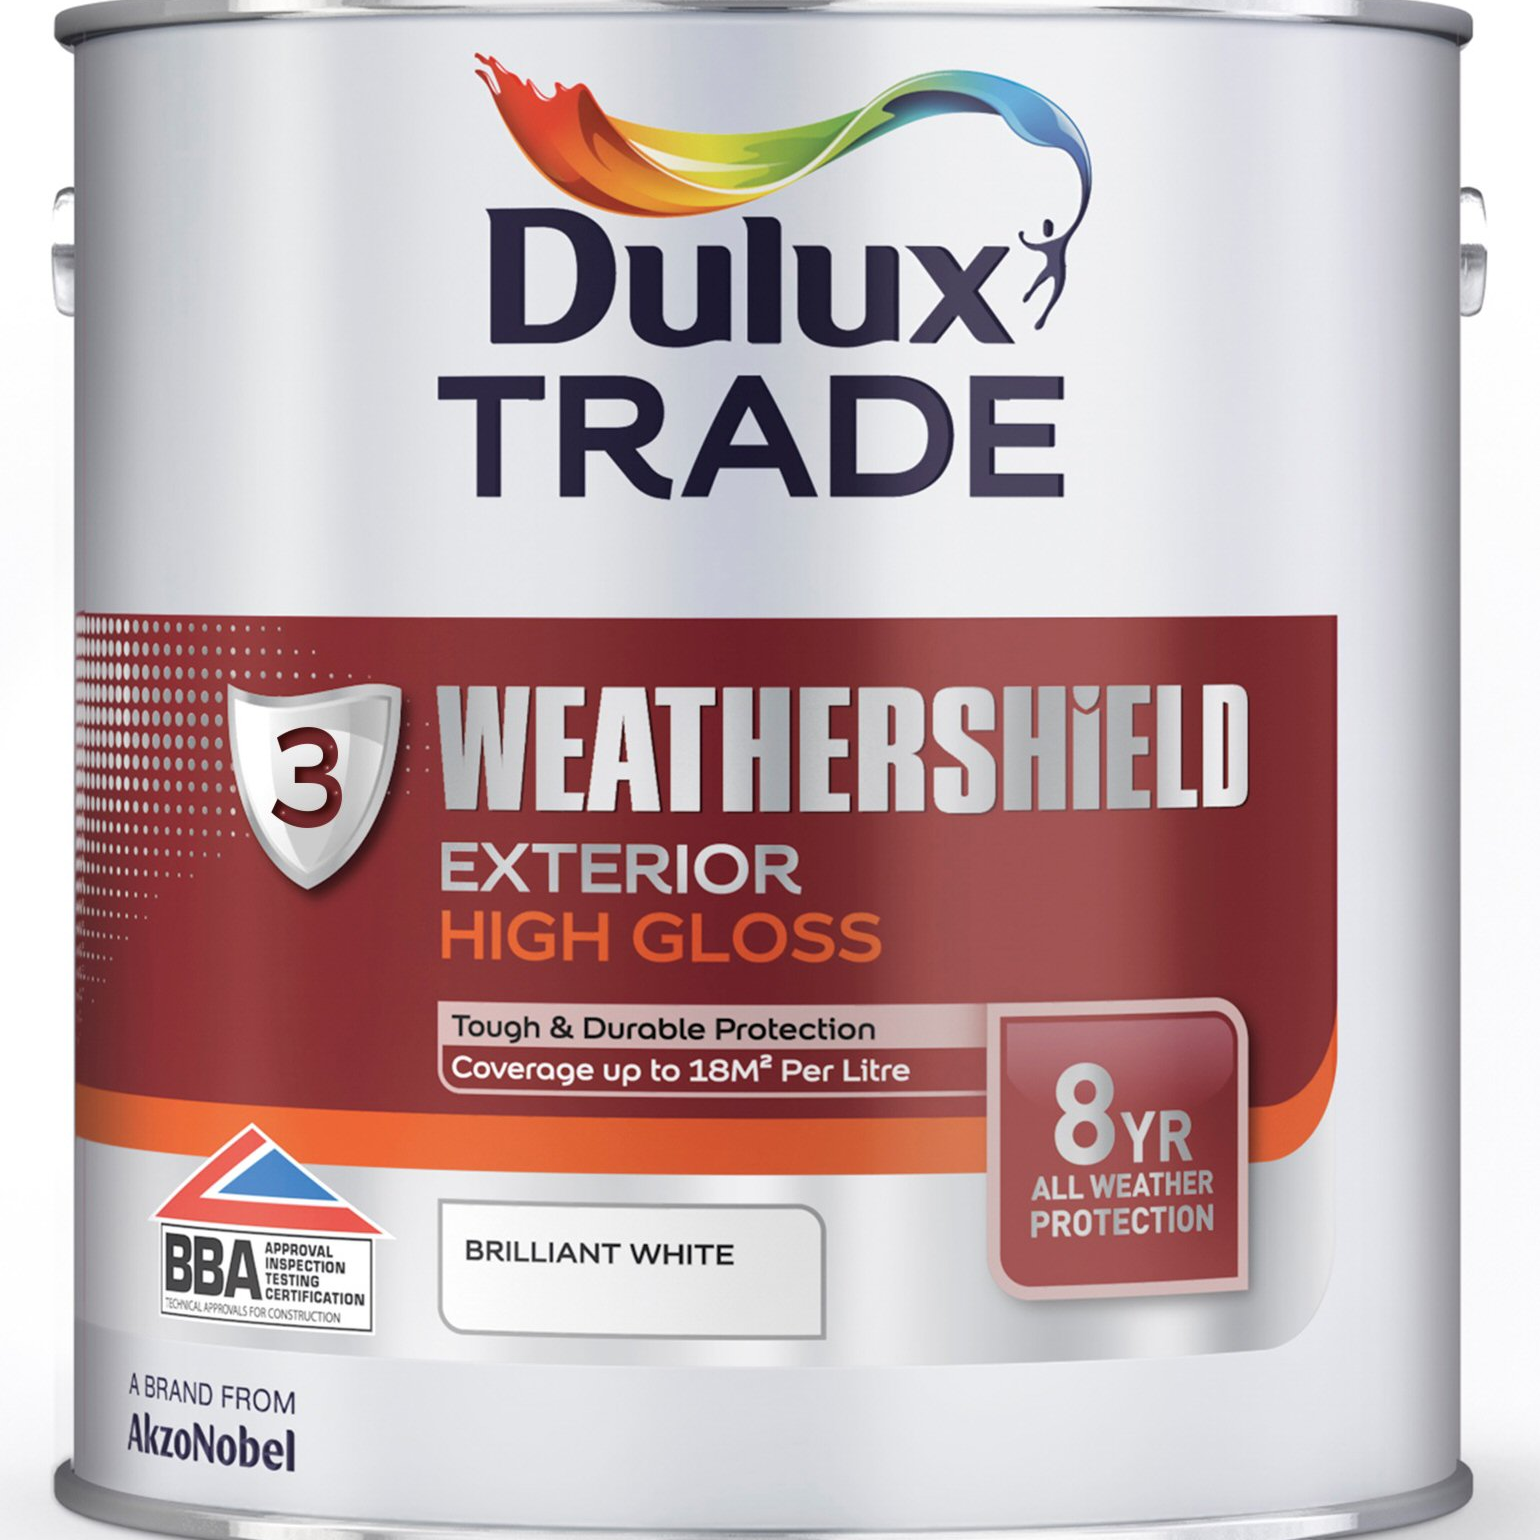 Dulux Trade Weathershield Exterior High Gloss Custom Mixed Colours